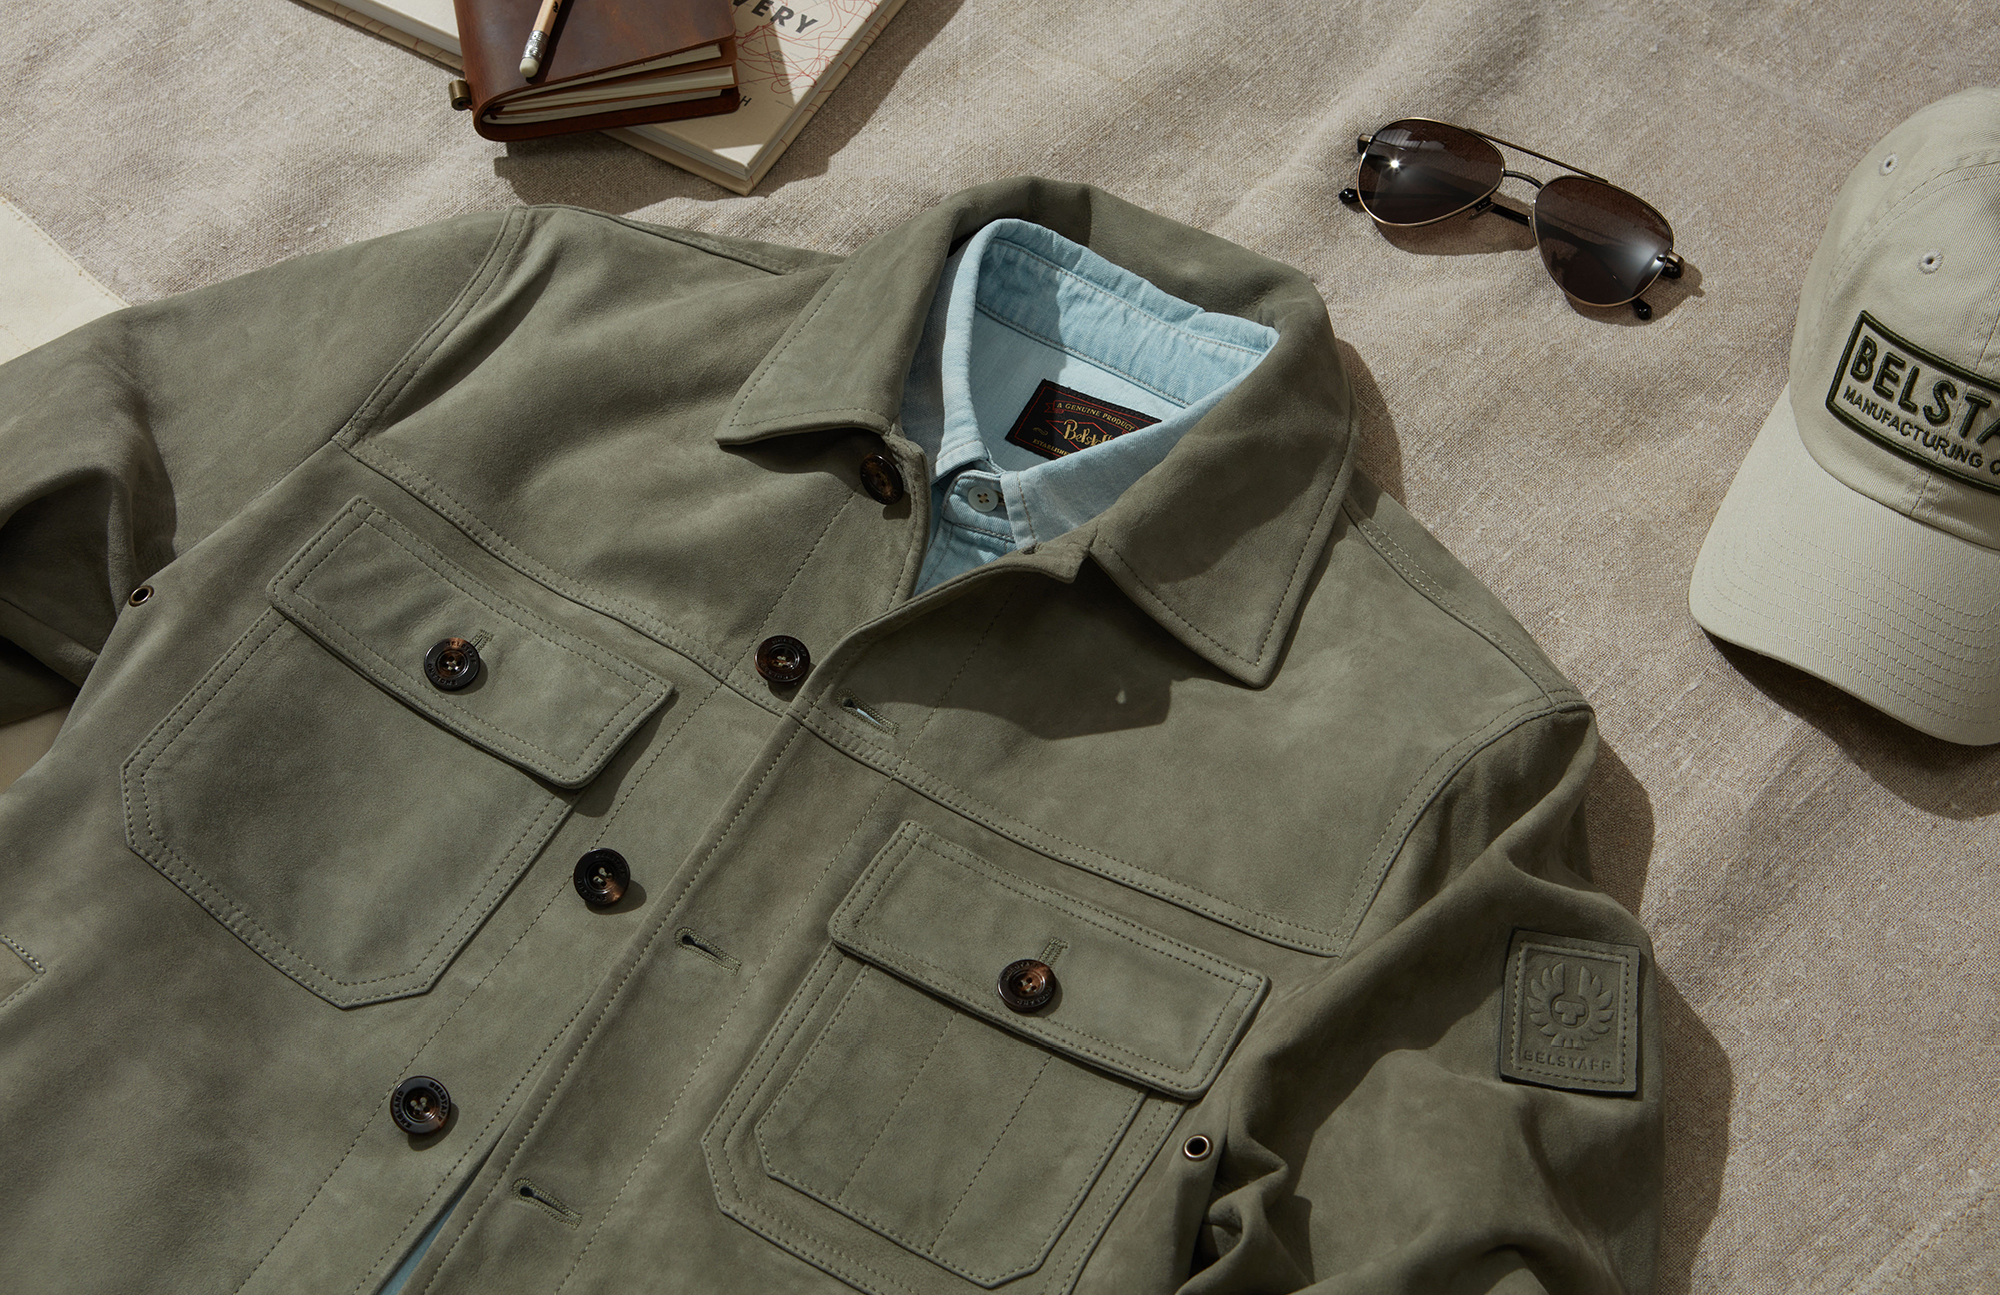 The Belstaff Recruit overshirt in featherweight suede is a key item in the Belstaff Summer Exclusive collection